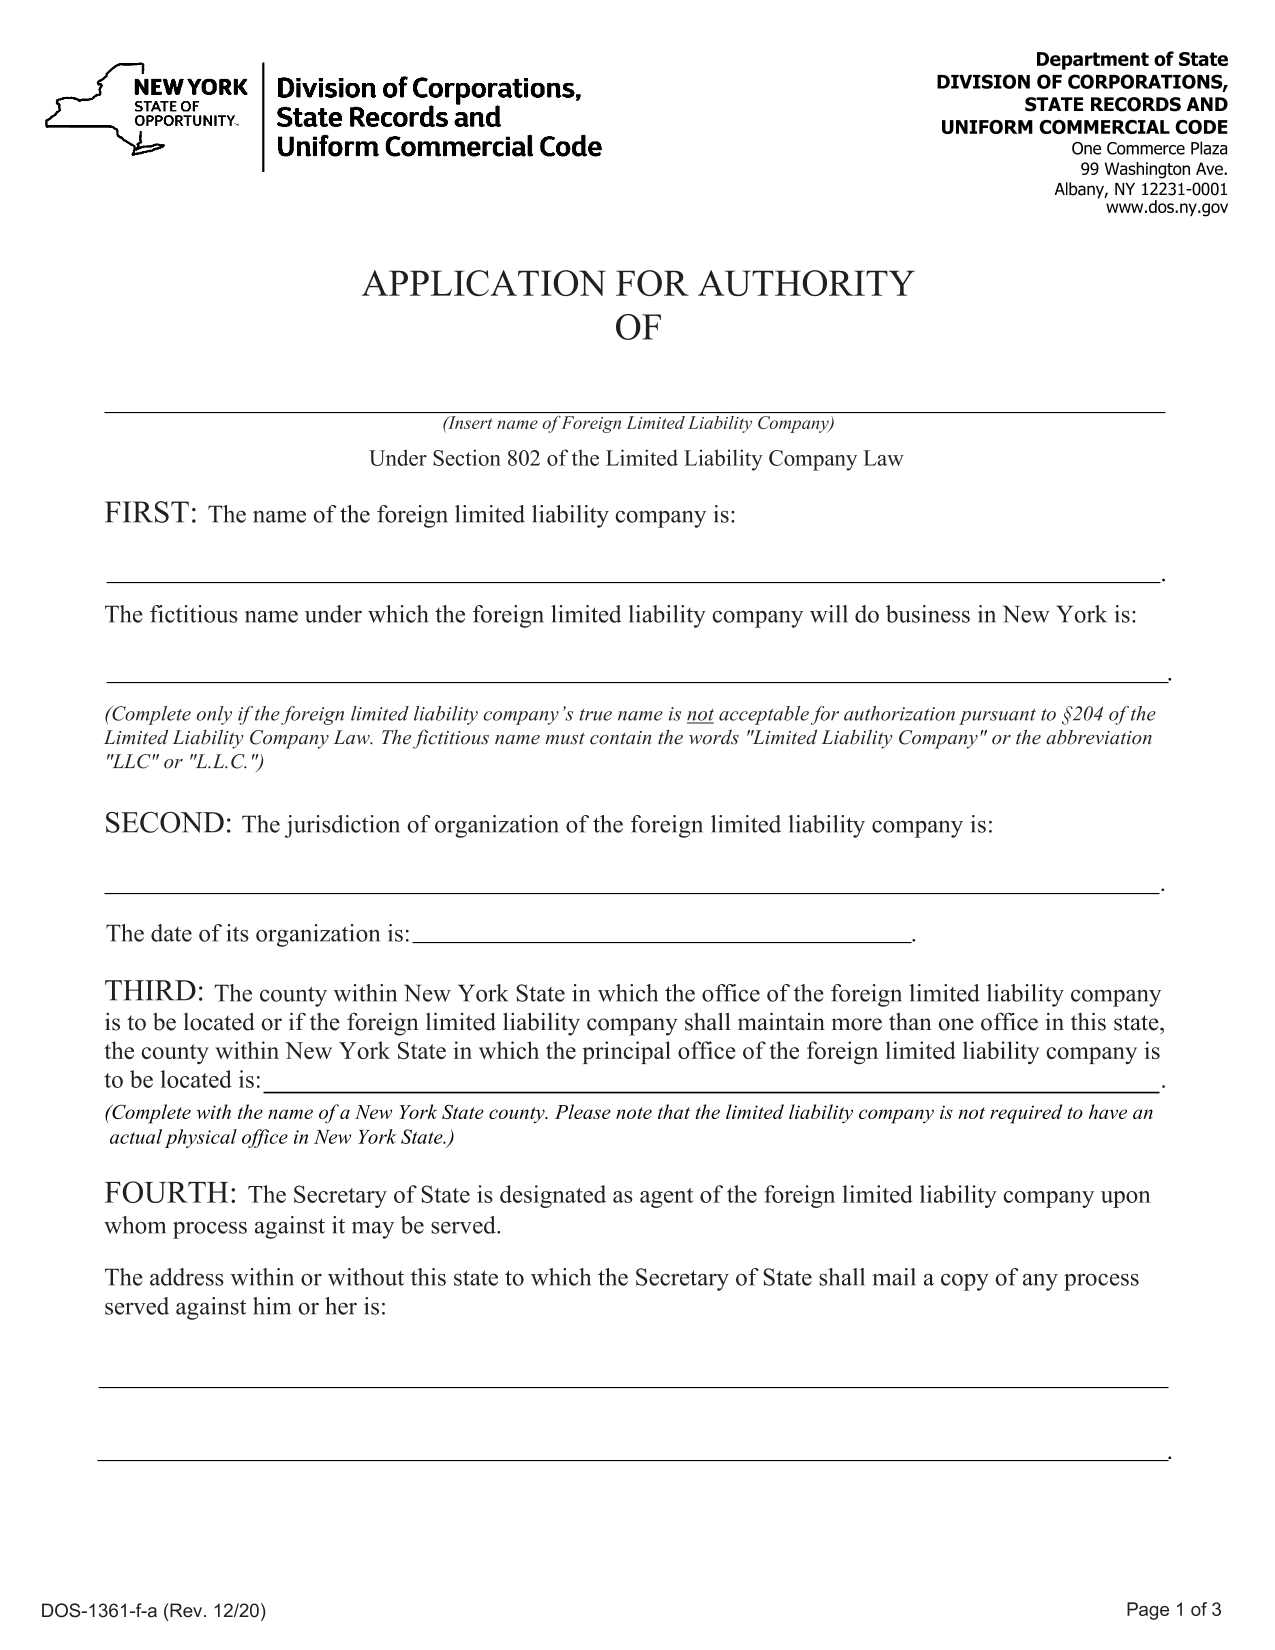 application-for-authority